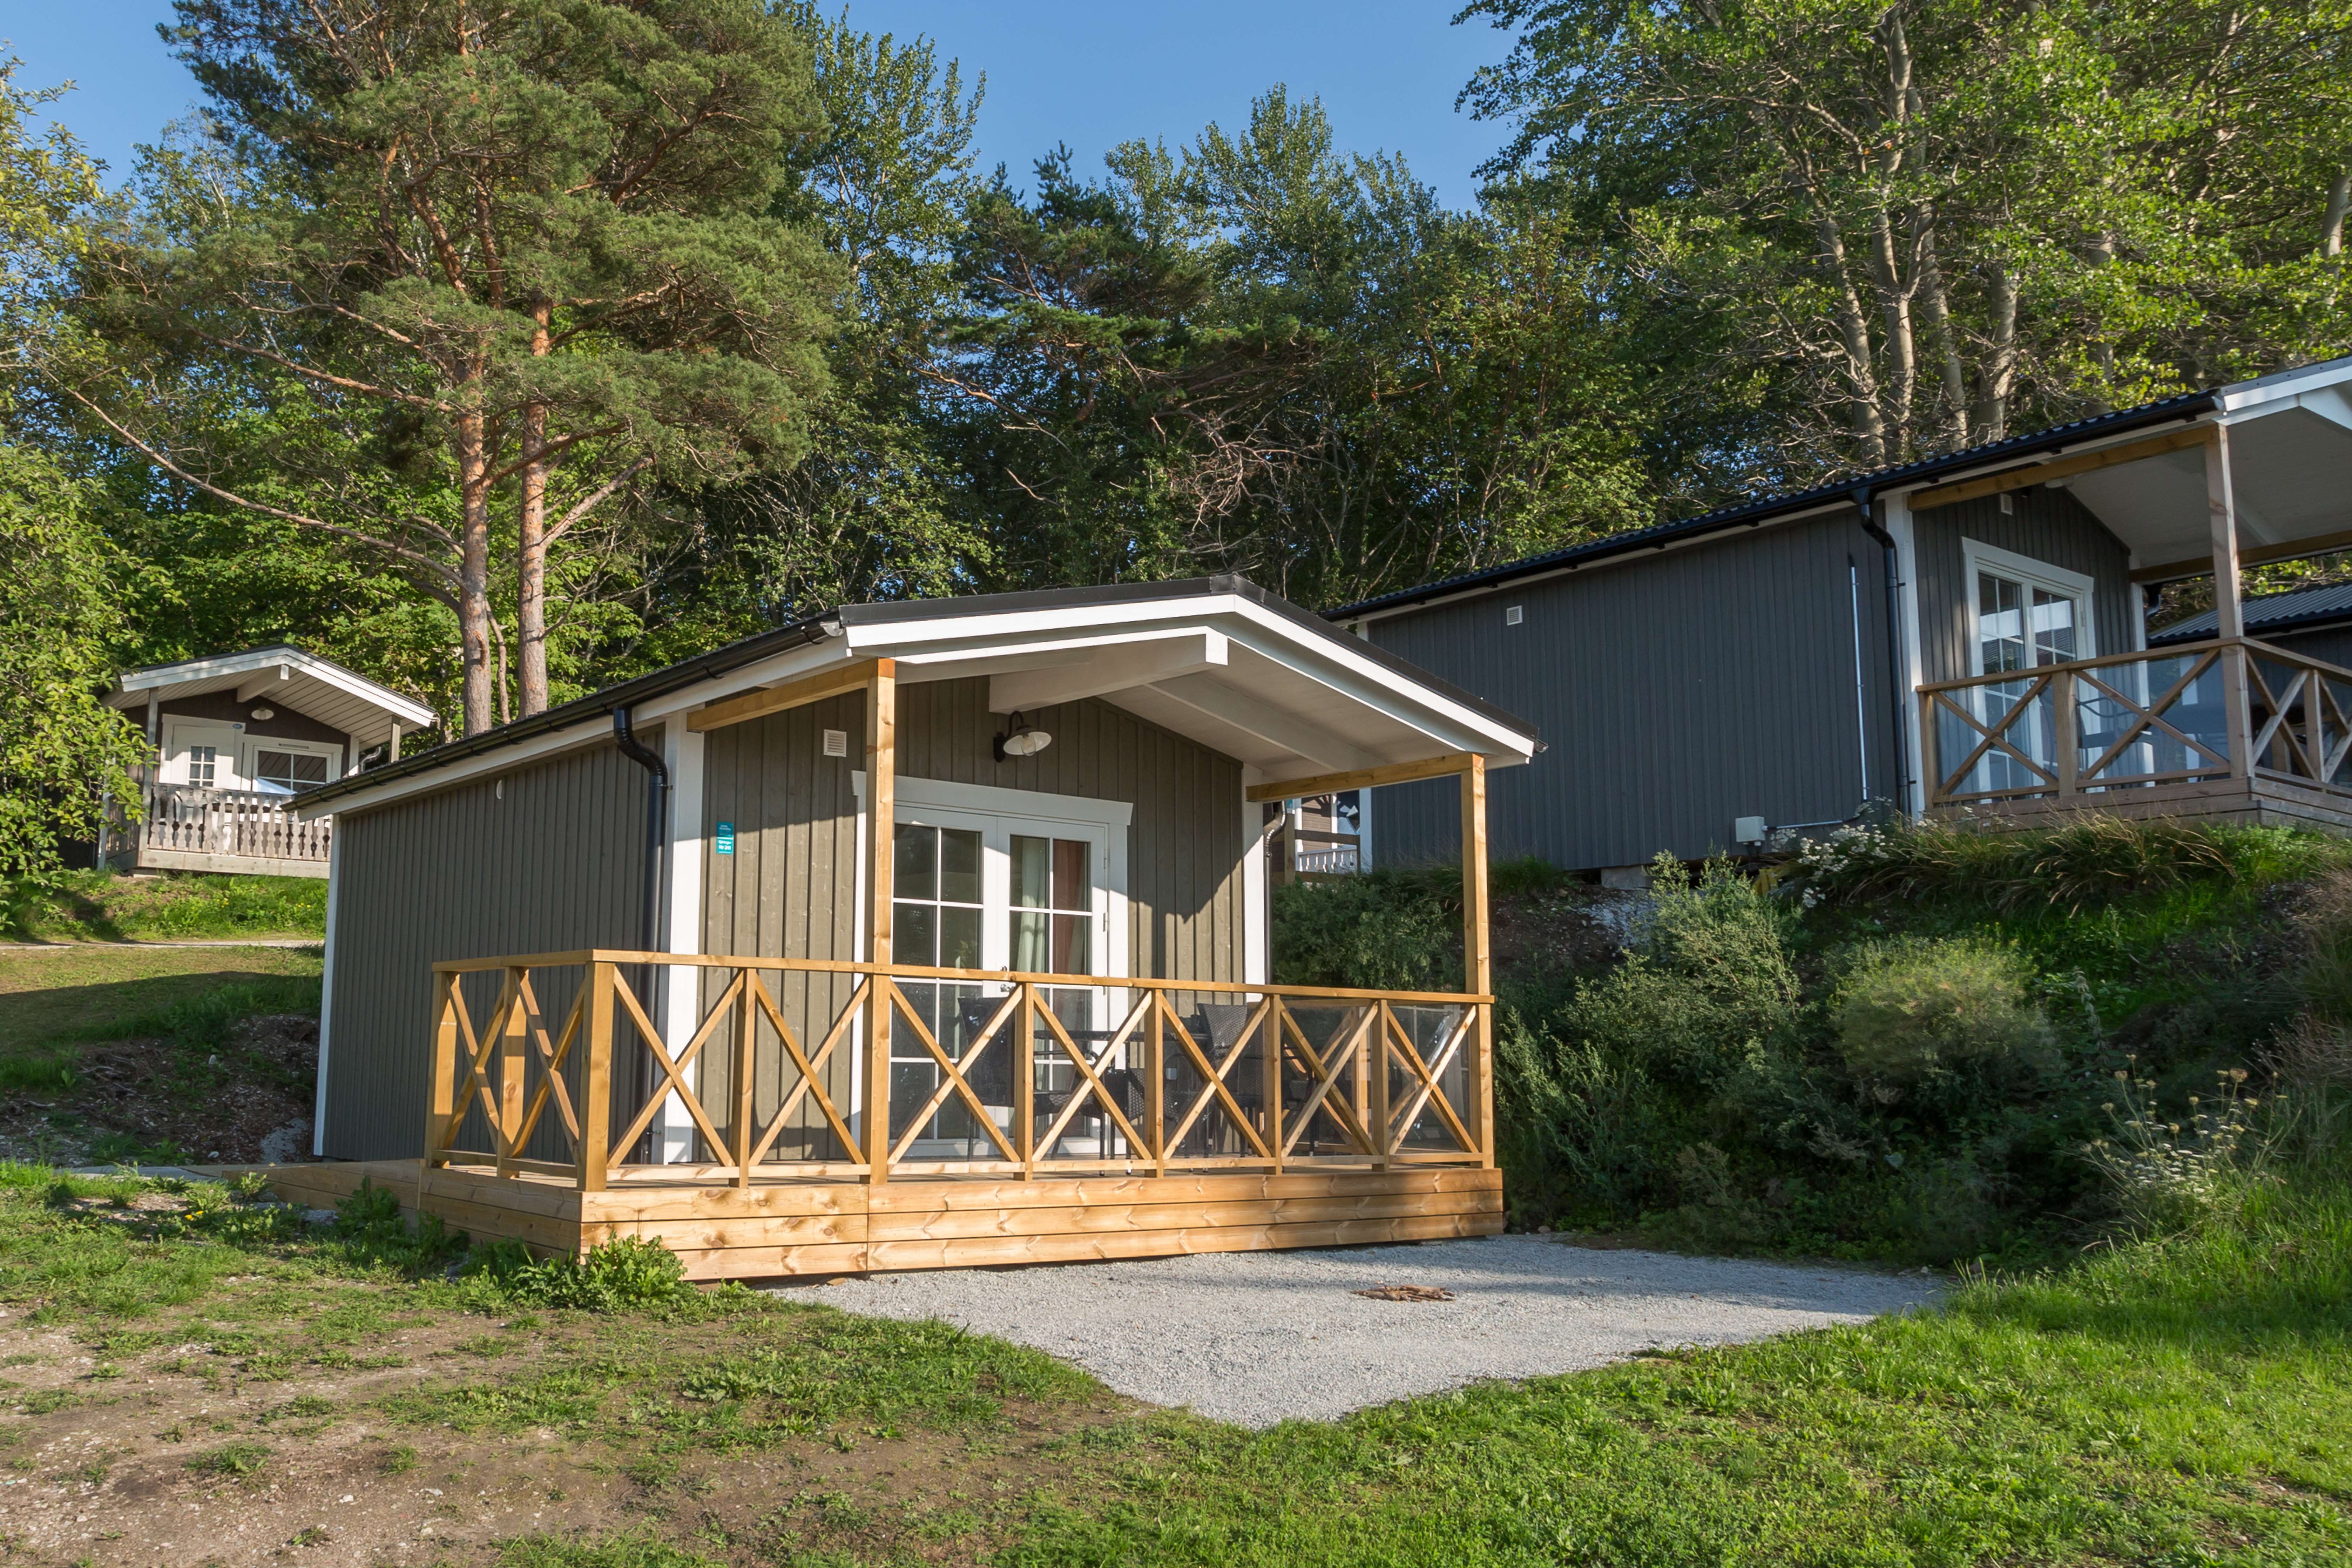 Best Accommodation Visby camping cottages – Visby strandby